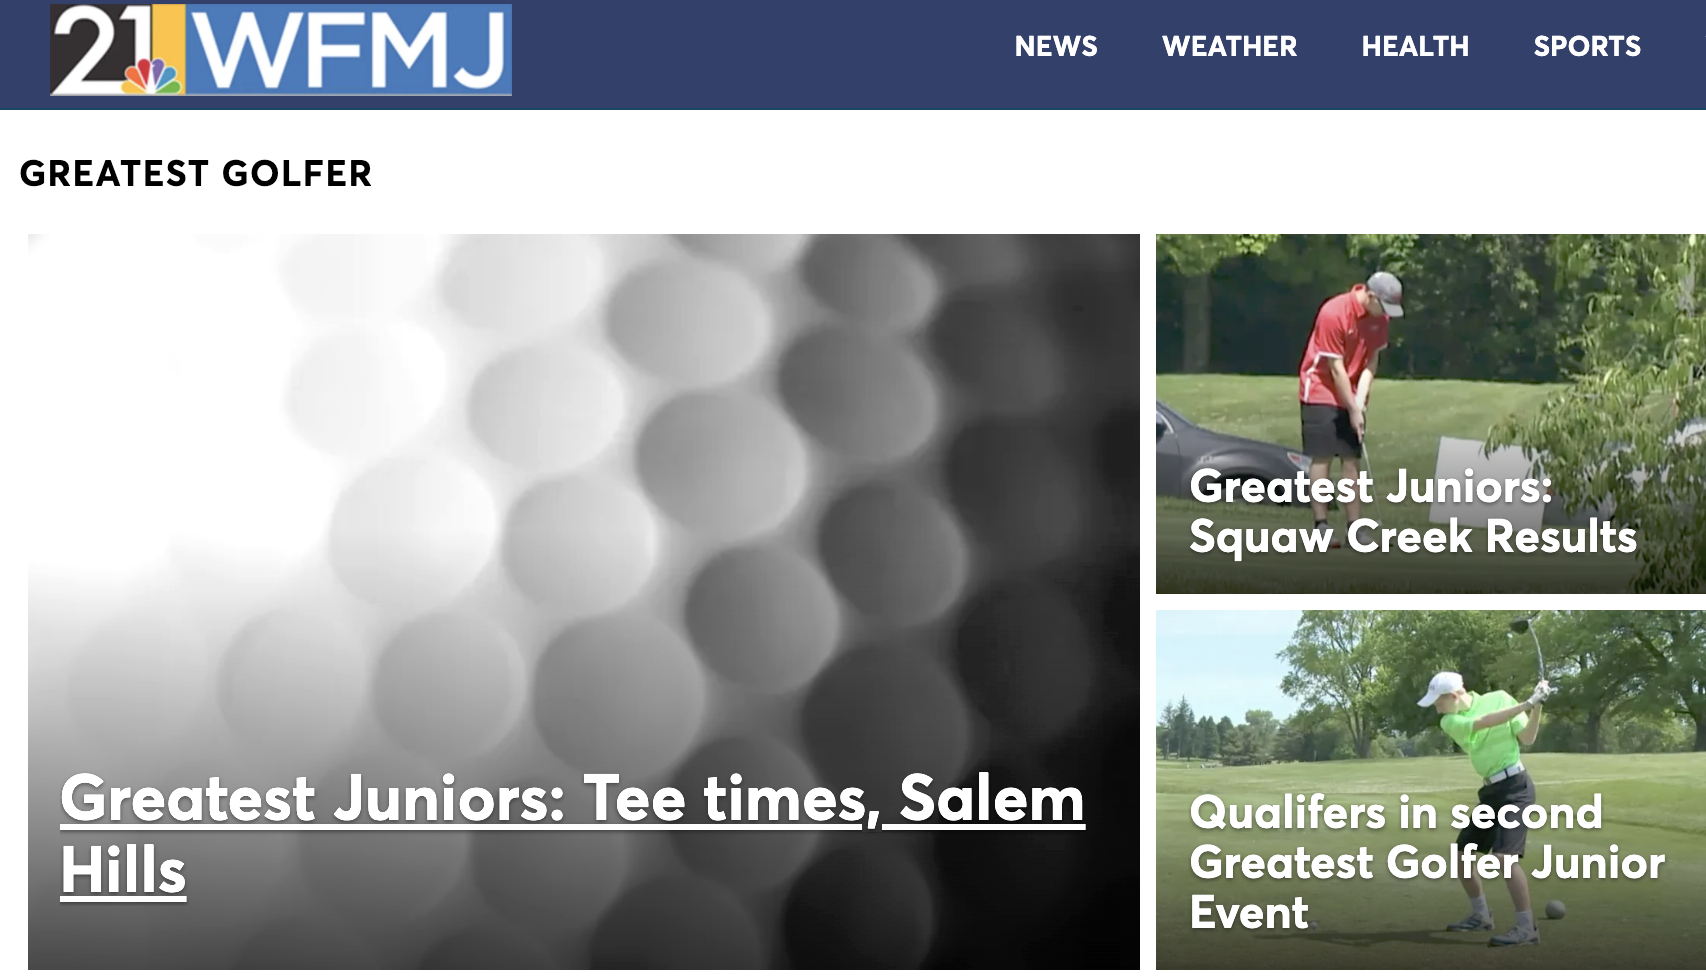 WFMJ has Thursday tees for Salem Hills juniors